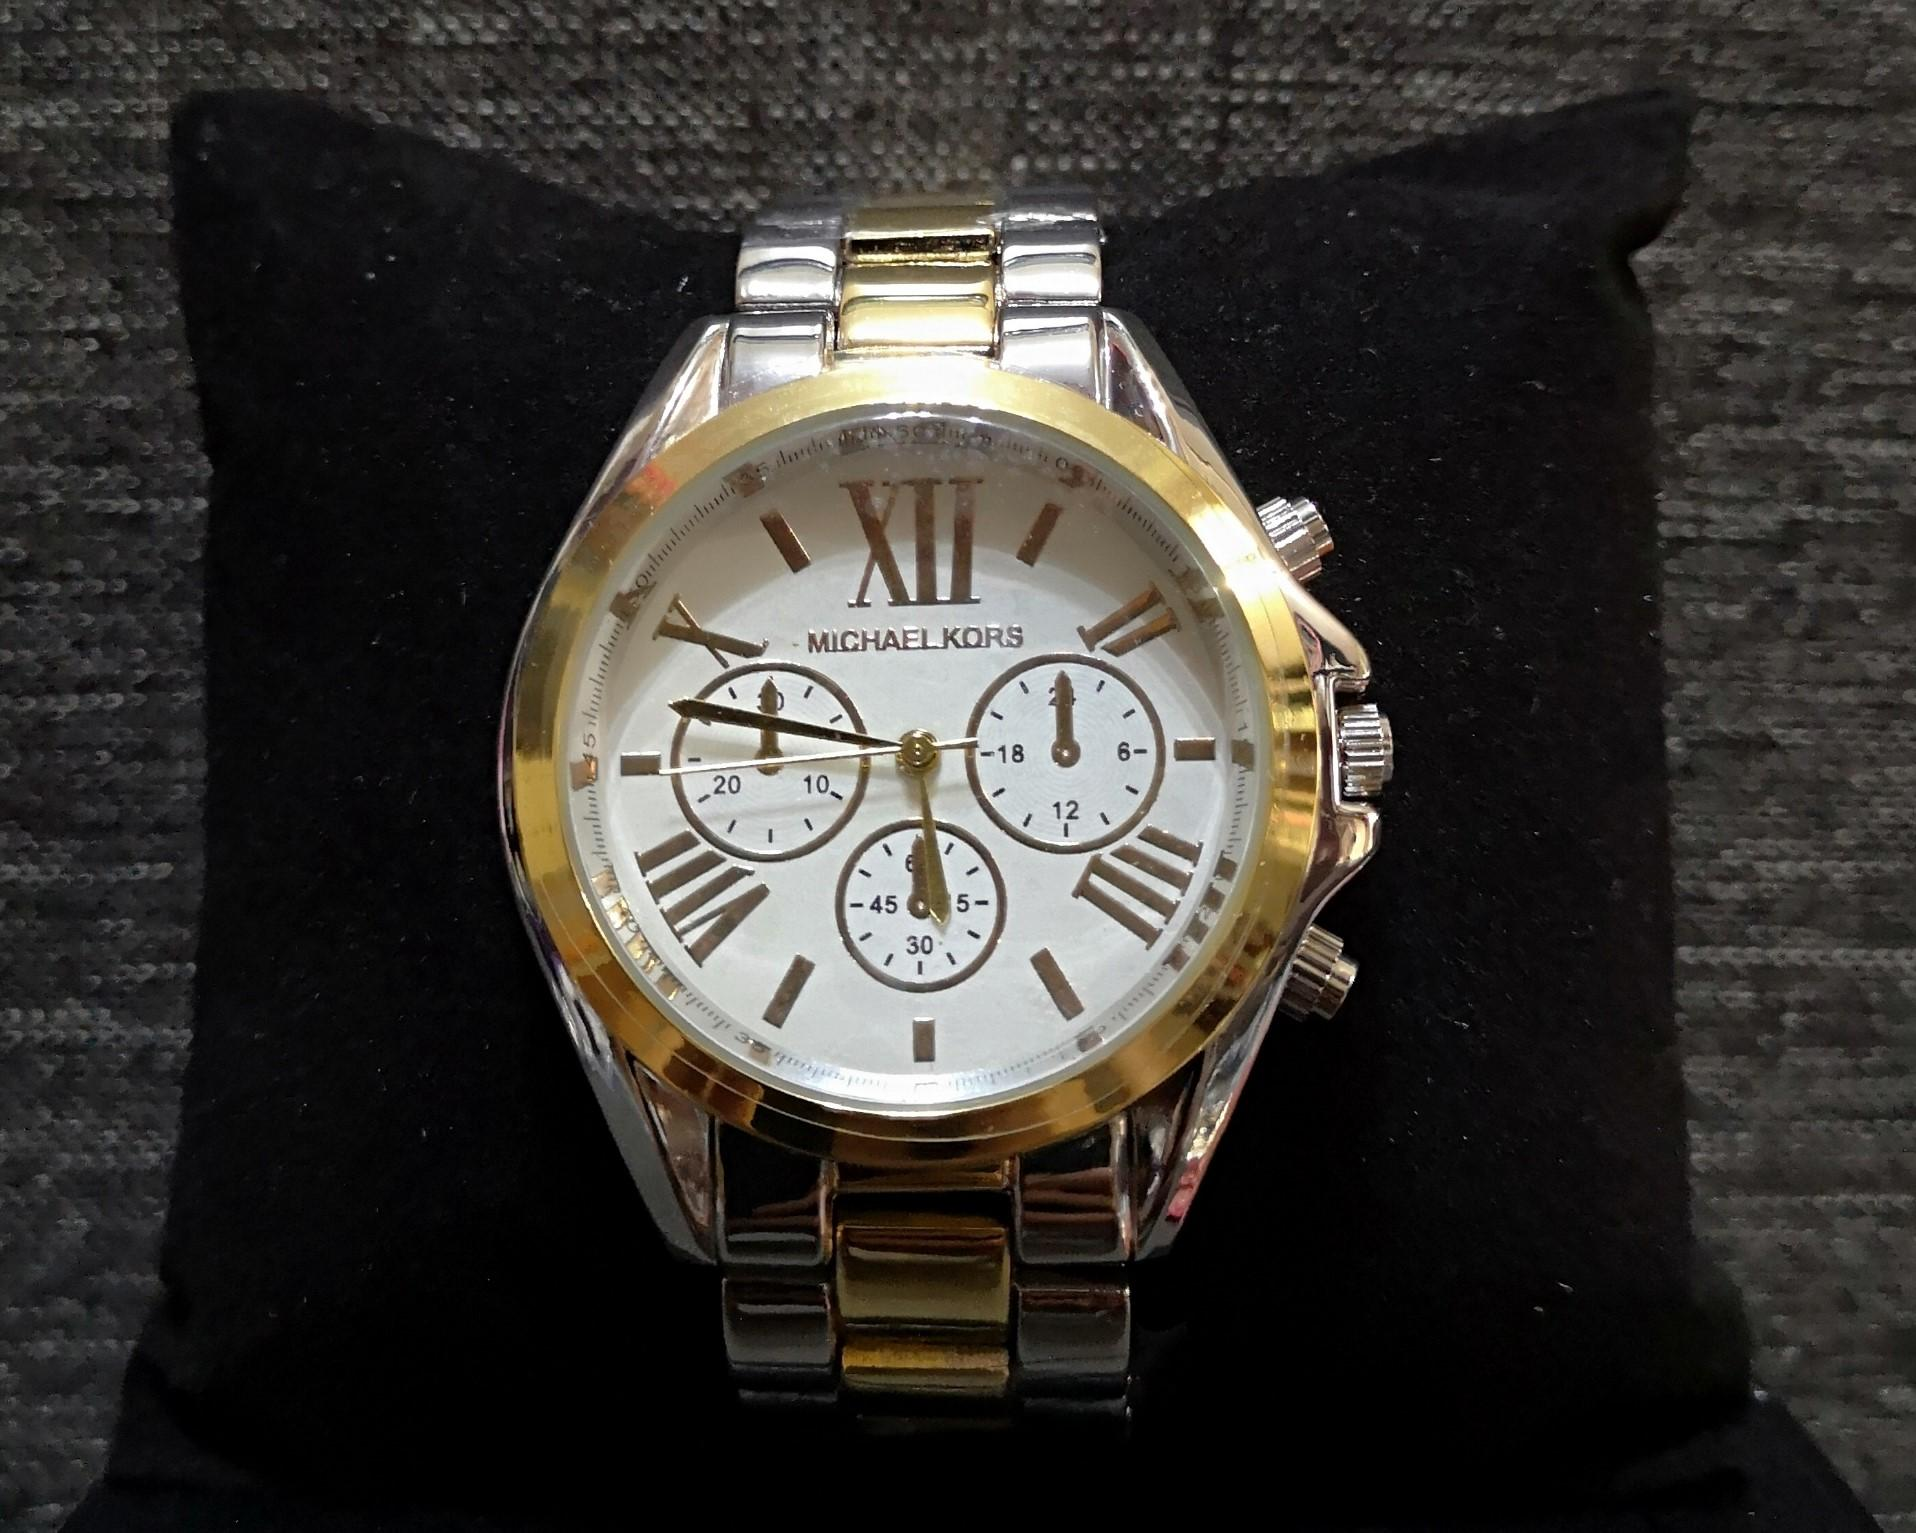 398bfd66c2e0 Michael Kors Philippines -Michael Kors Watches for sale - prices   reviews